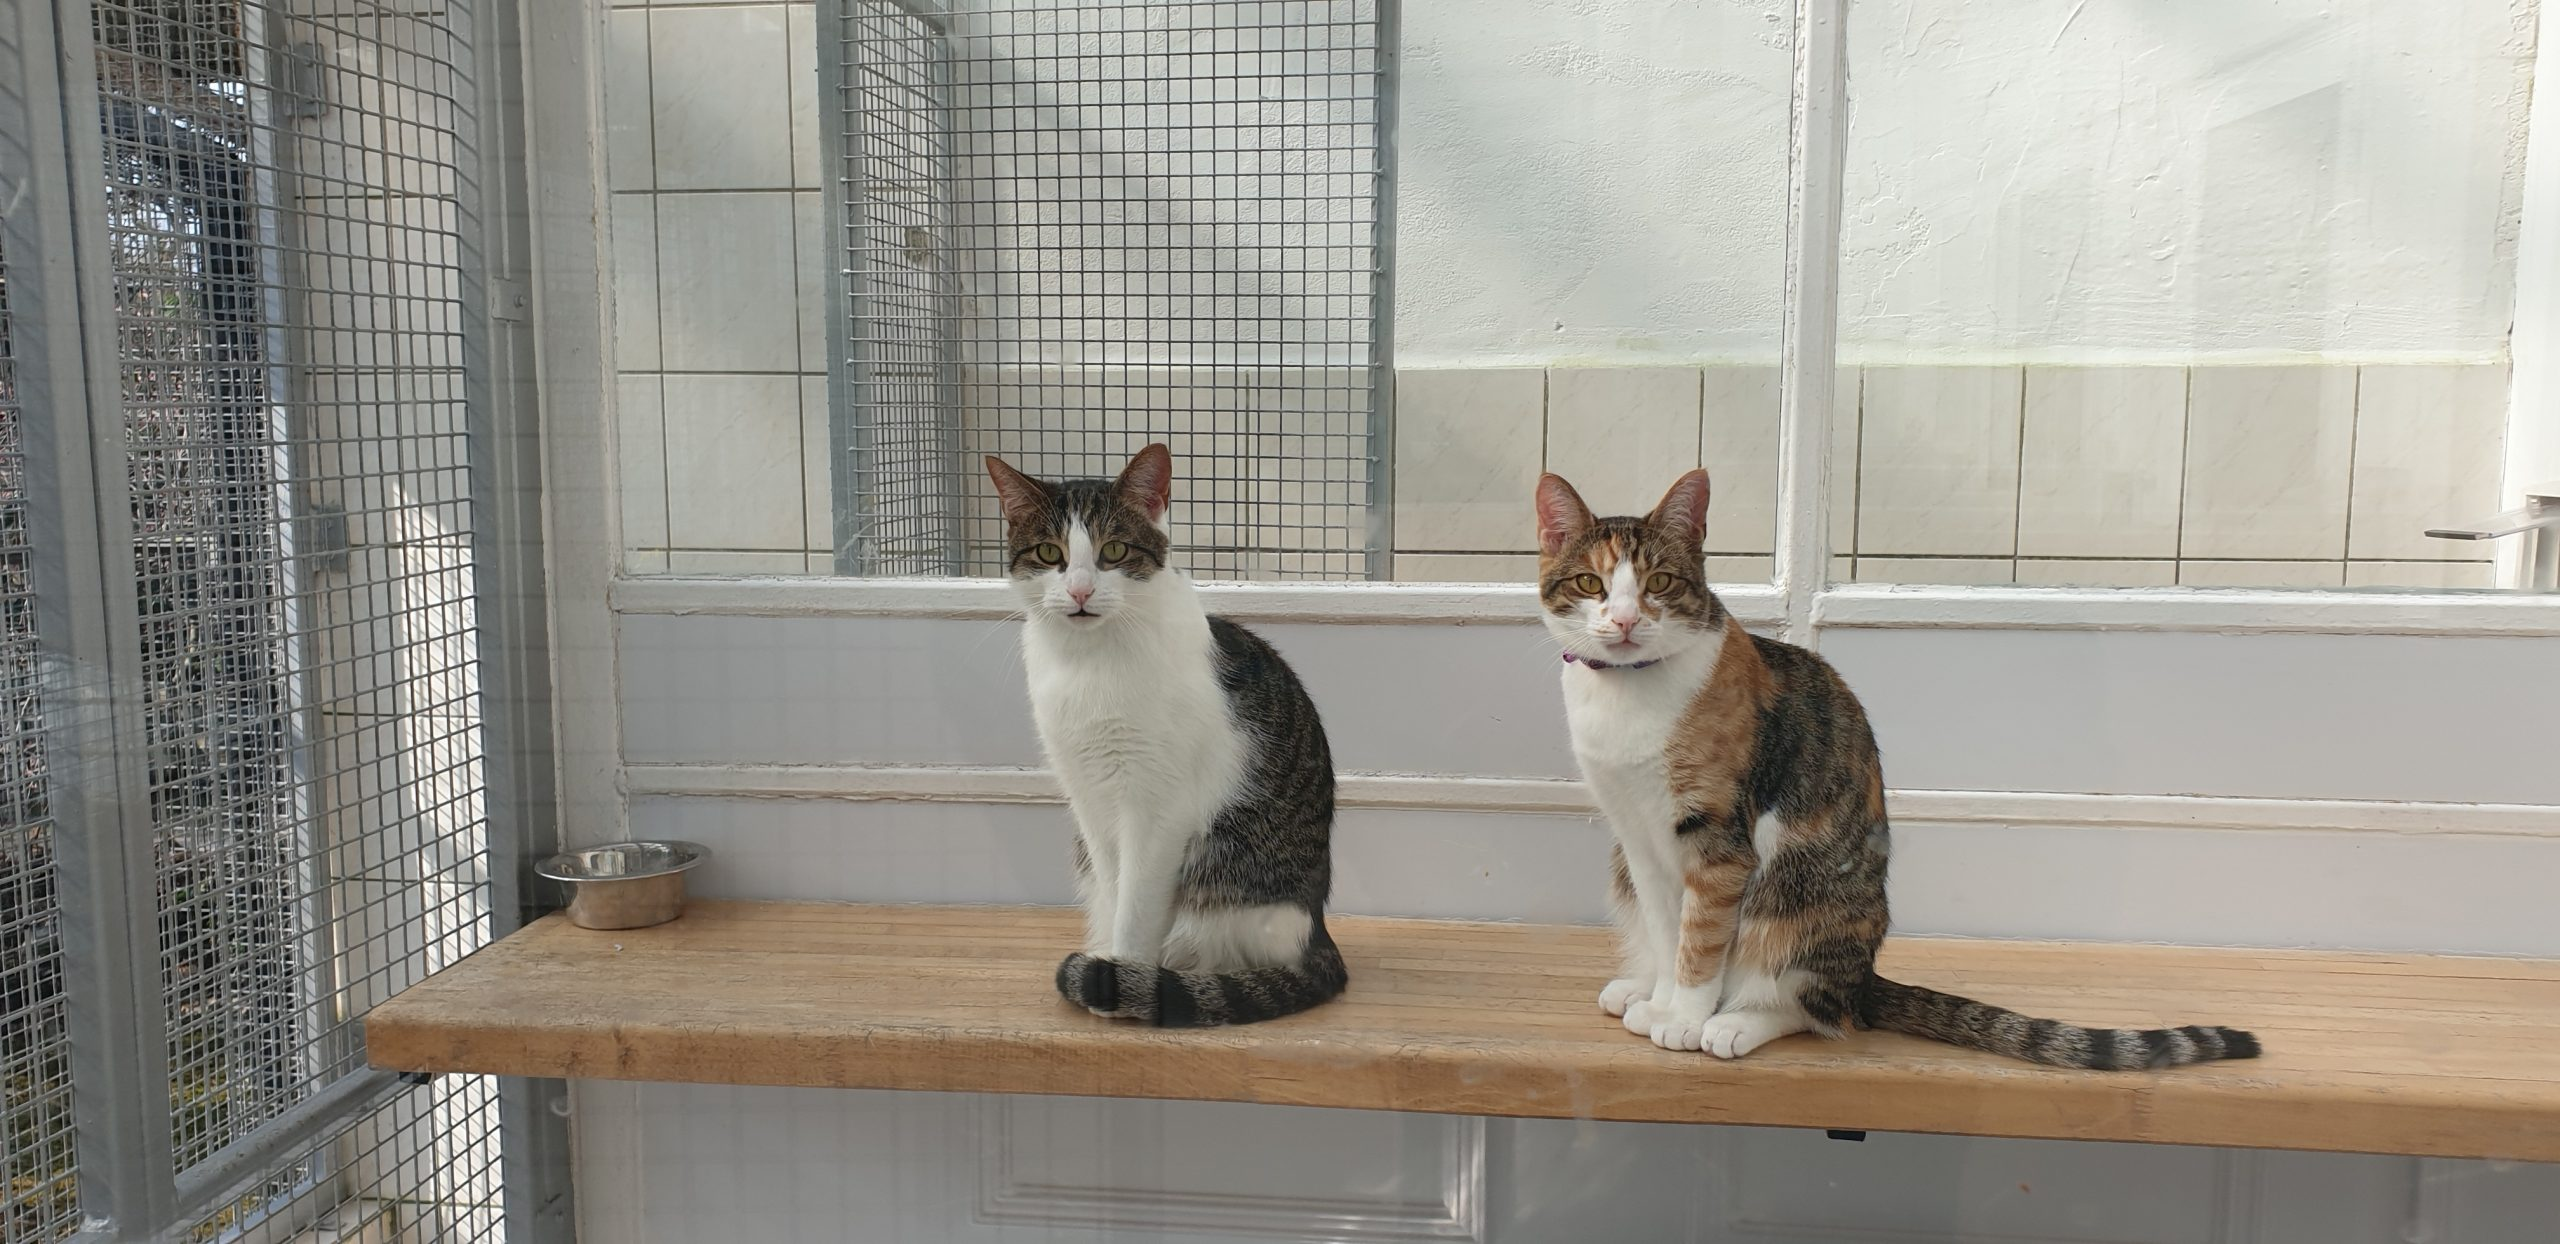 2 cats cattery 20190417_153212